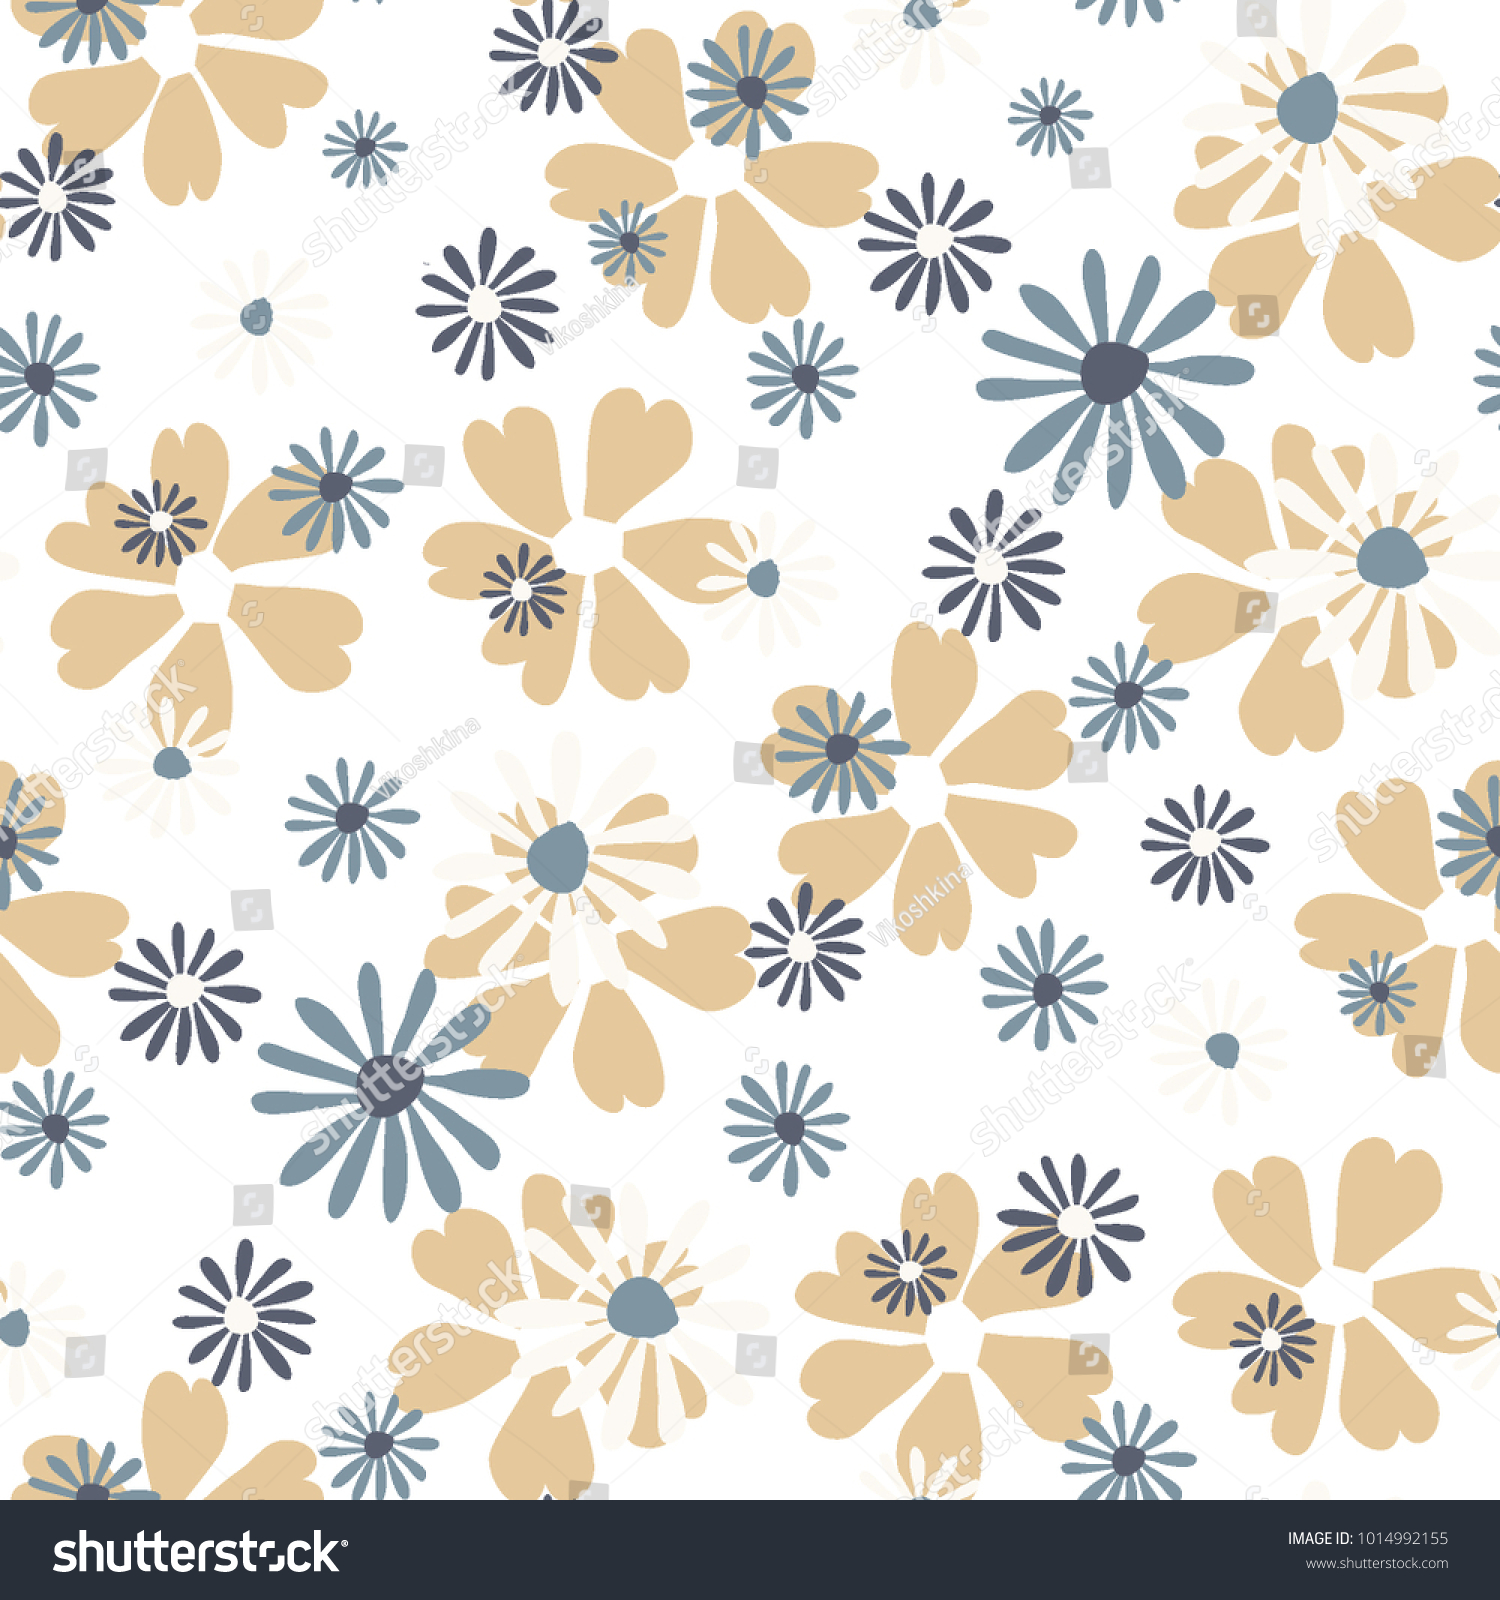 Small Floral Pattern Cute Daisy Flowers And Violets For Seamless